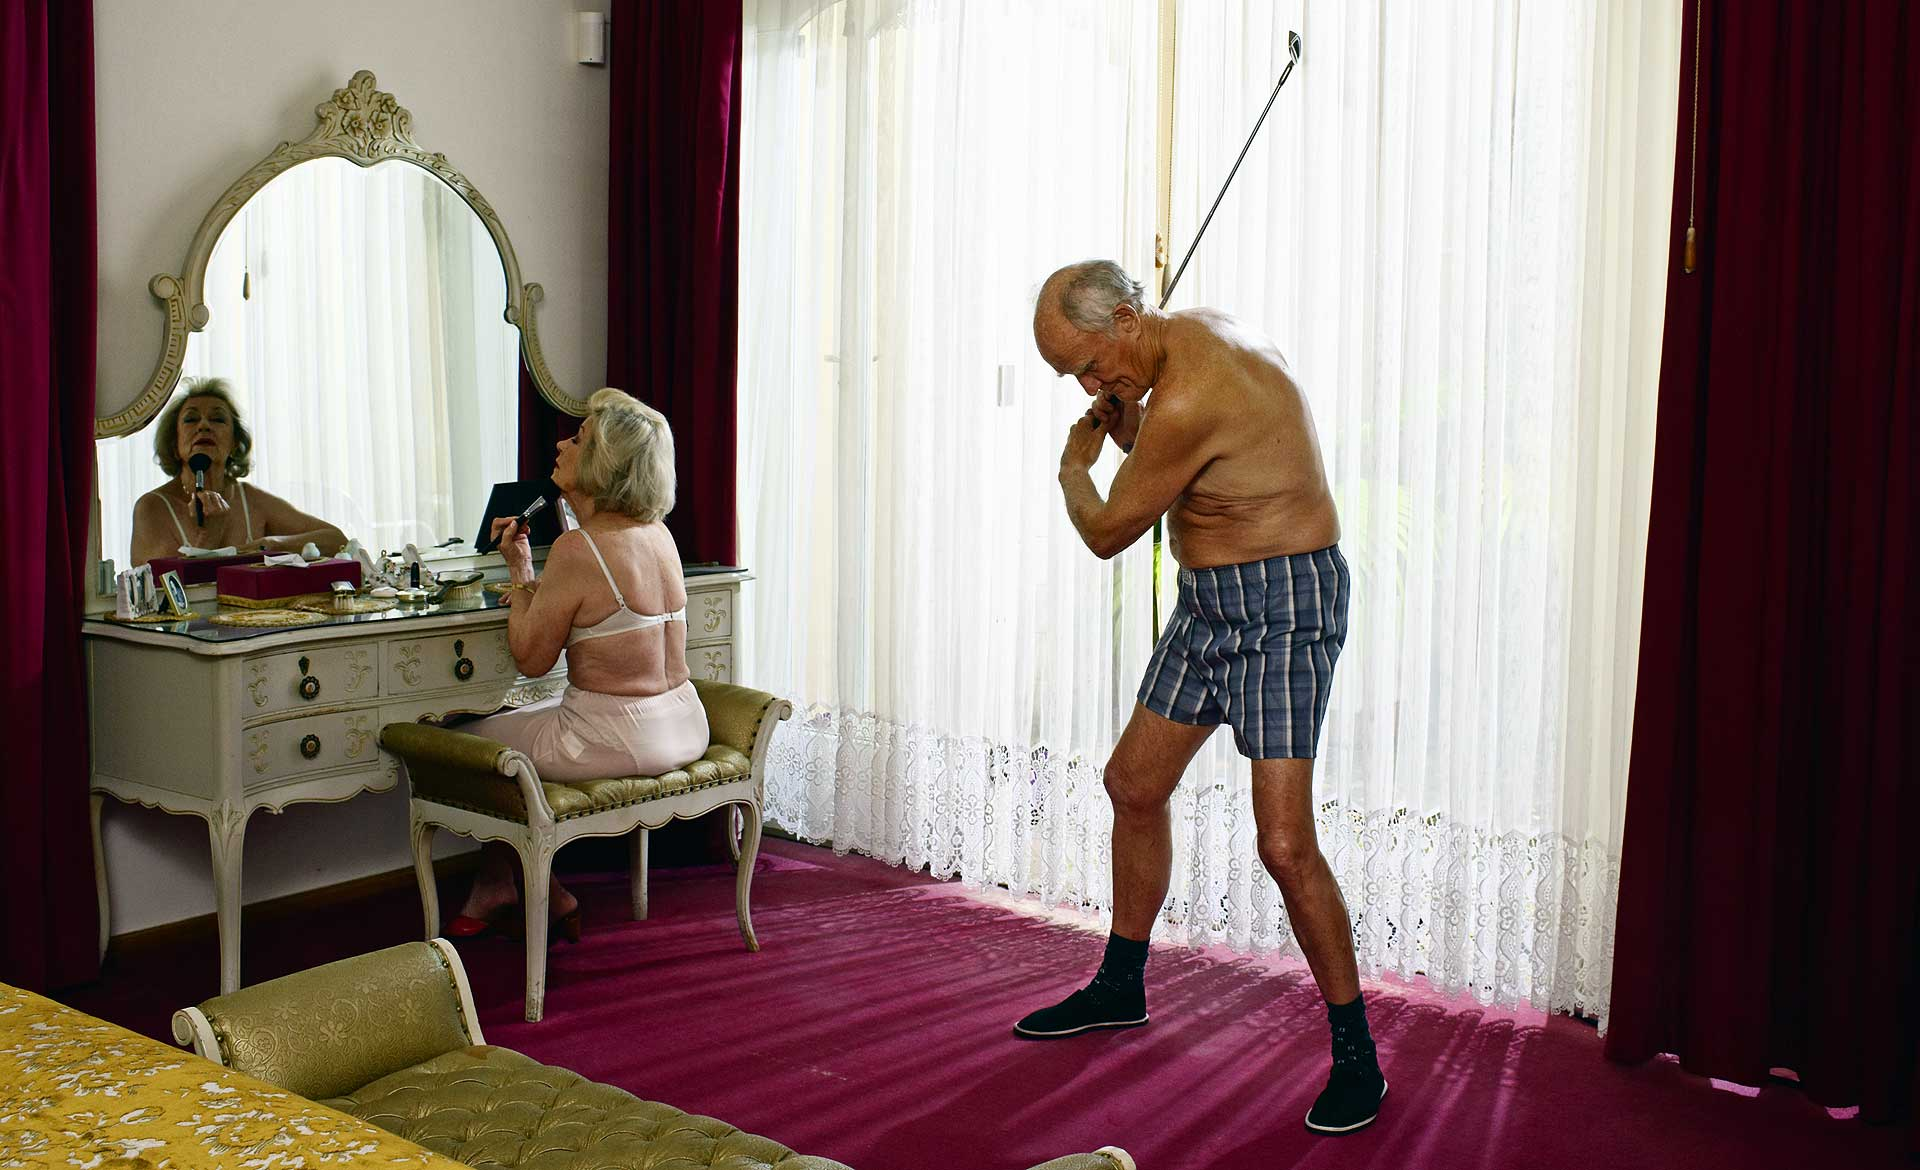 Granddad practicing Golf in bedroom